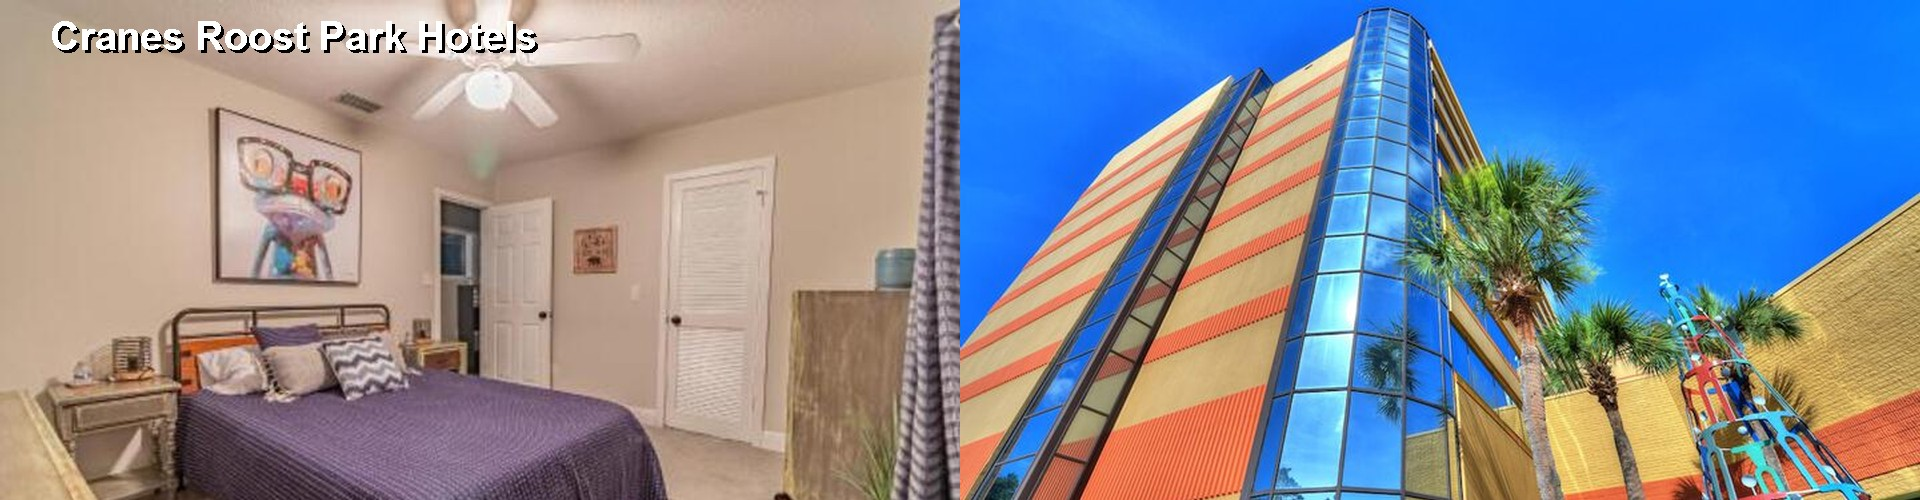 5 Best Hotels near Cranes Roost Park